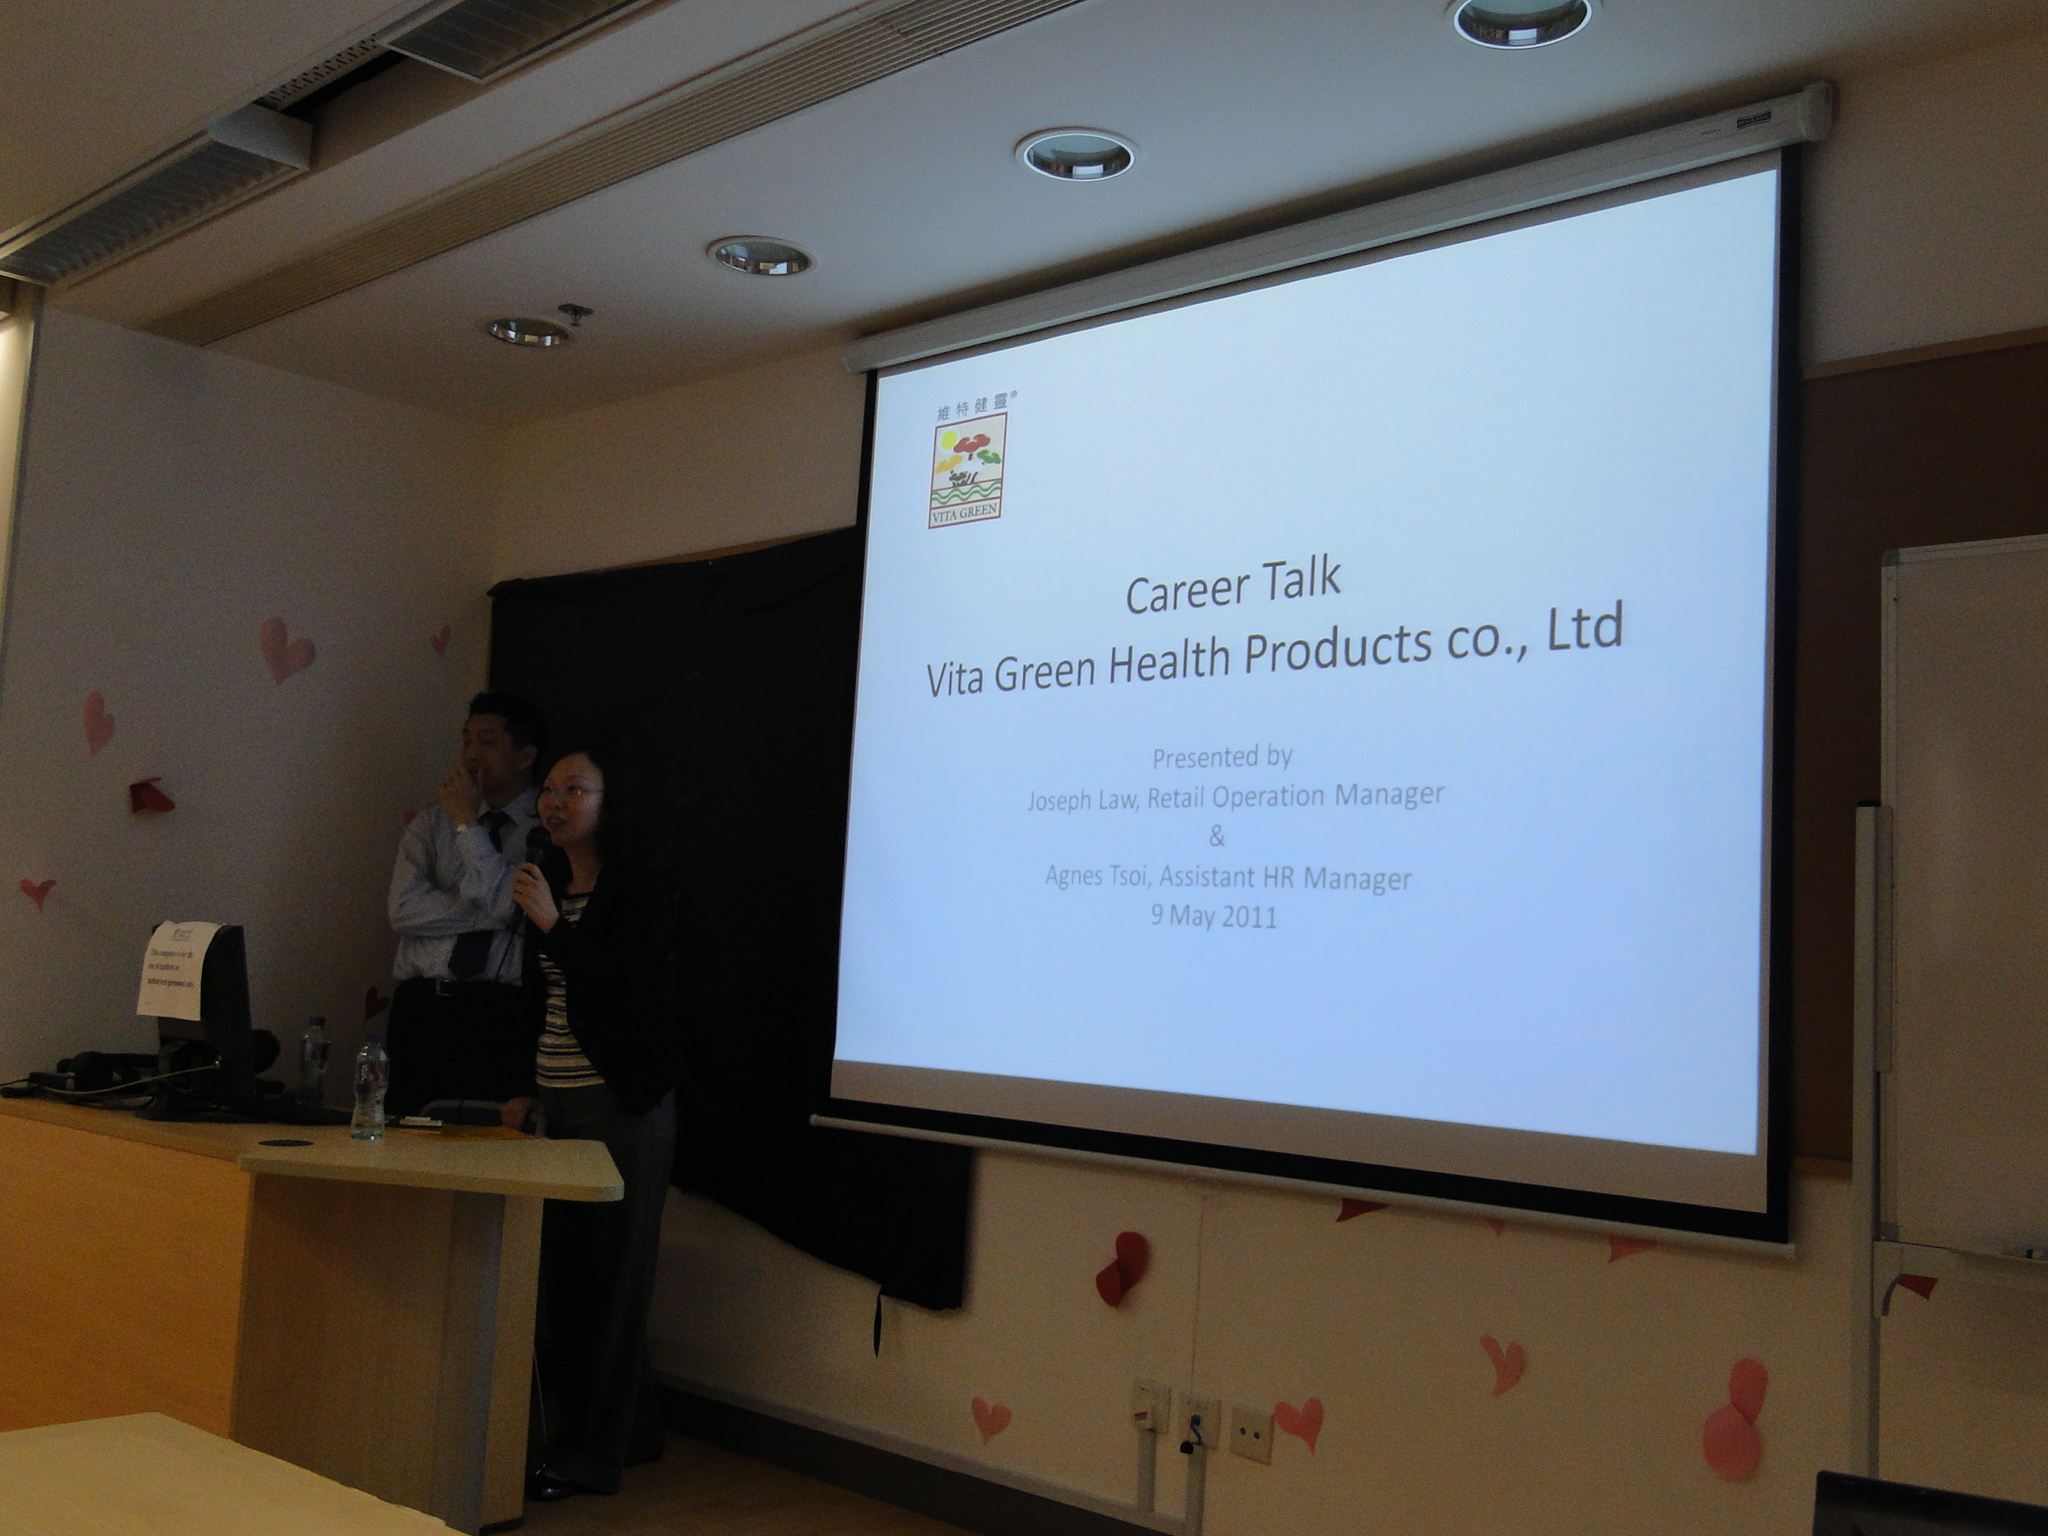 Recruitment Talk -- Vita Green Health Products Co. Ltd. - Photo - 5